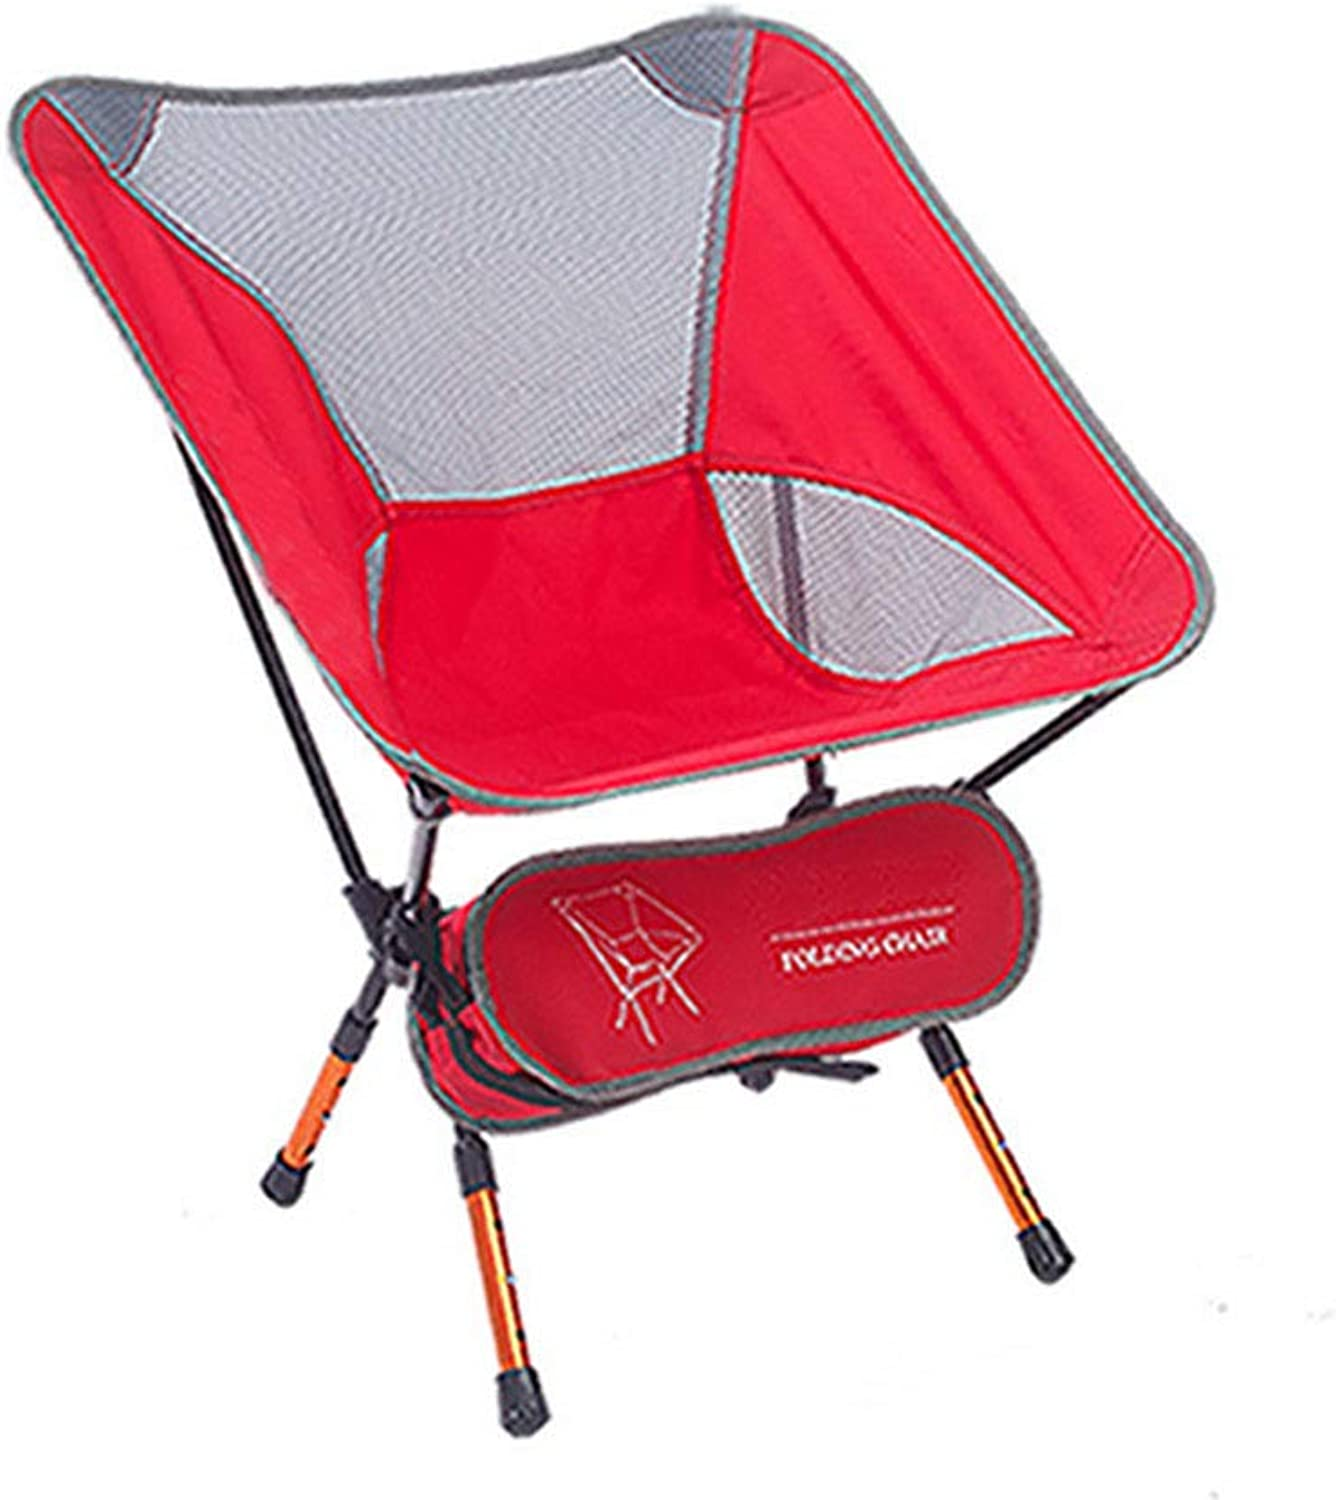 Foldable Fishing Chair Compact Camping Chair with Cooler Bag for Fishing, Camping, Hiking, Supports 130kg